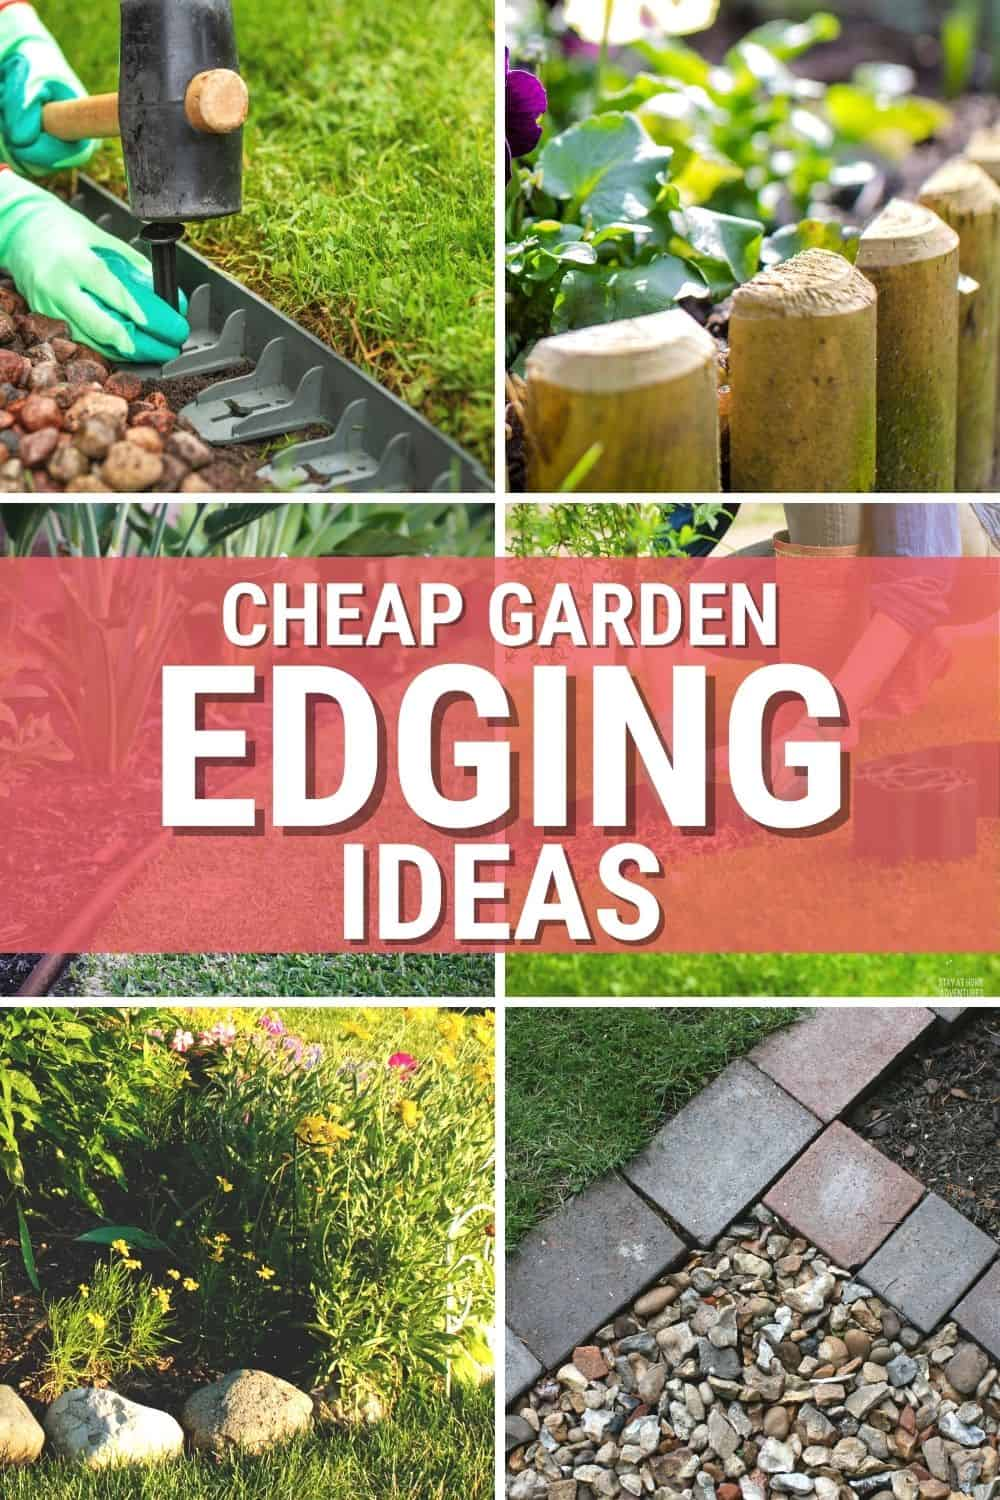 Five cheap garden edging ideas you can use in your garden and home landscape will make your outdoors look amazing. via @mystayathome